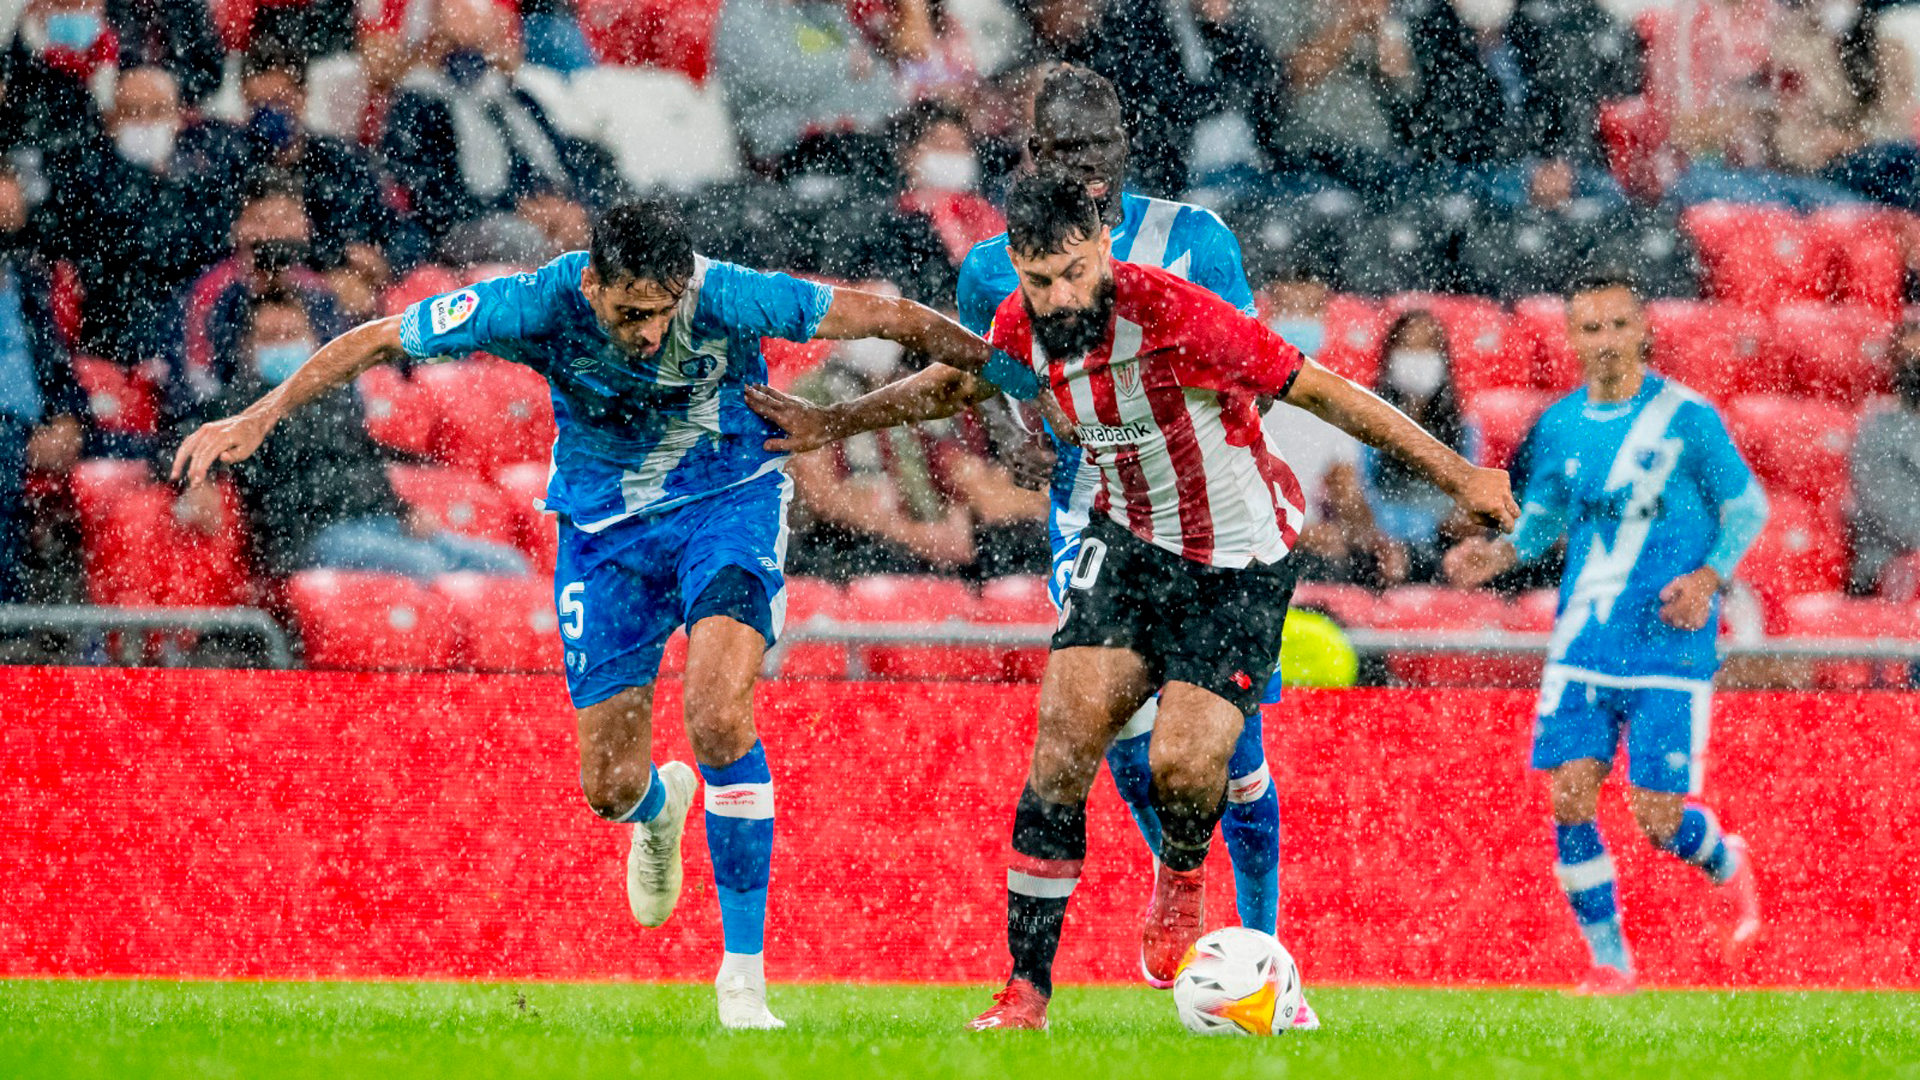 Athletic fall to first loss of the season